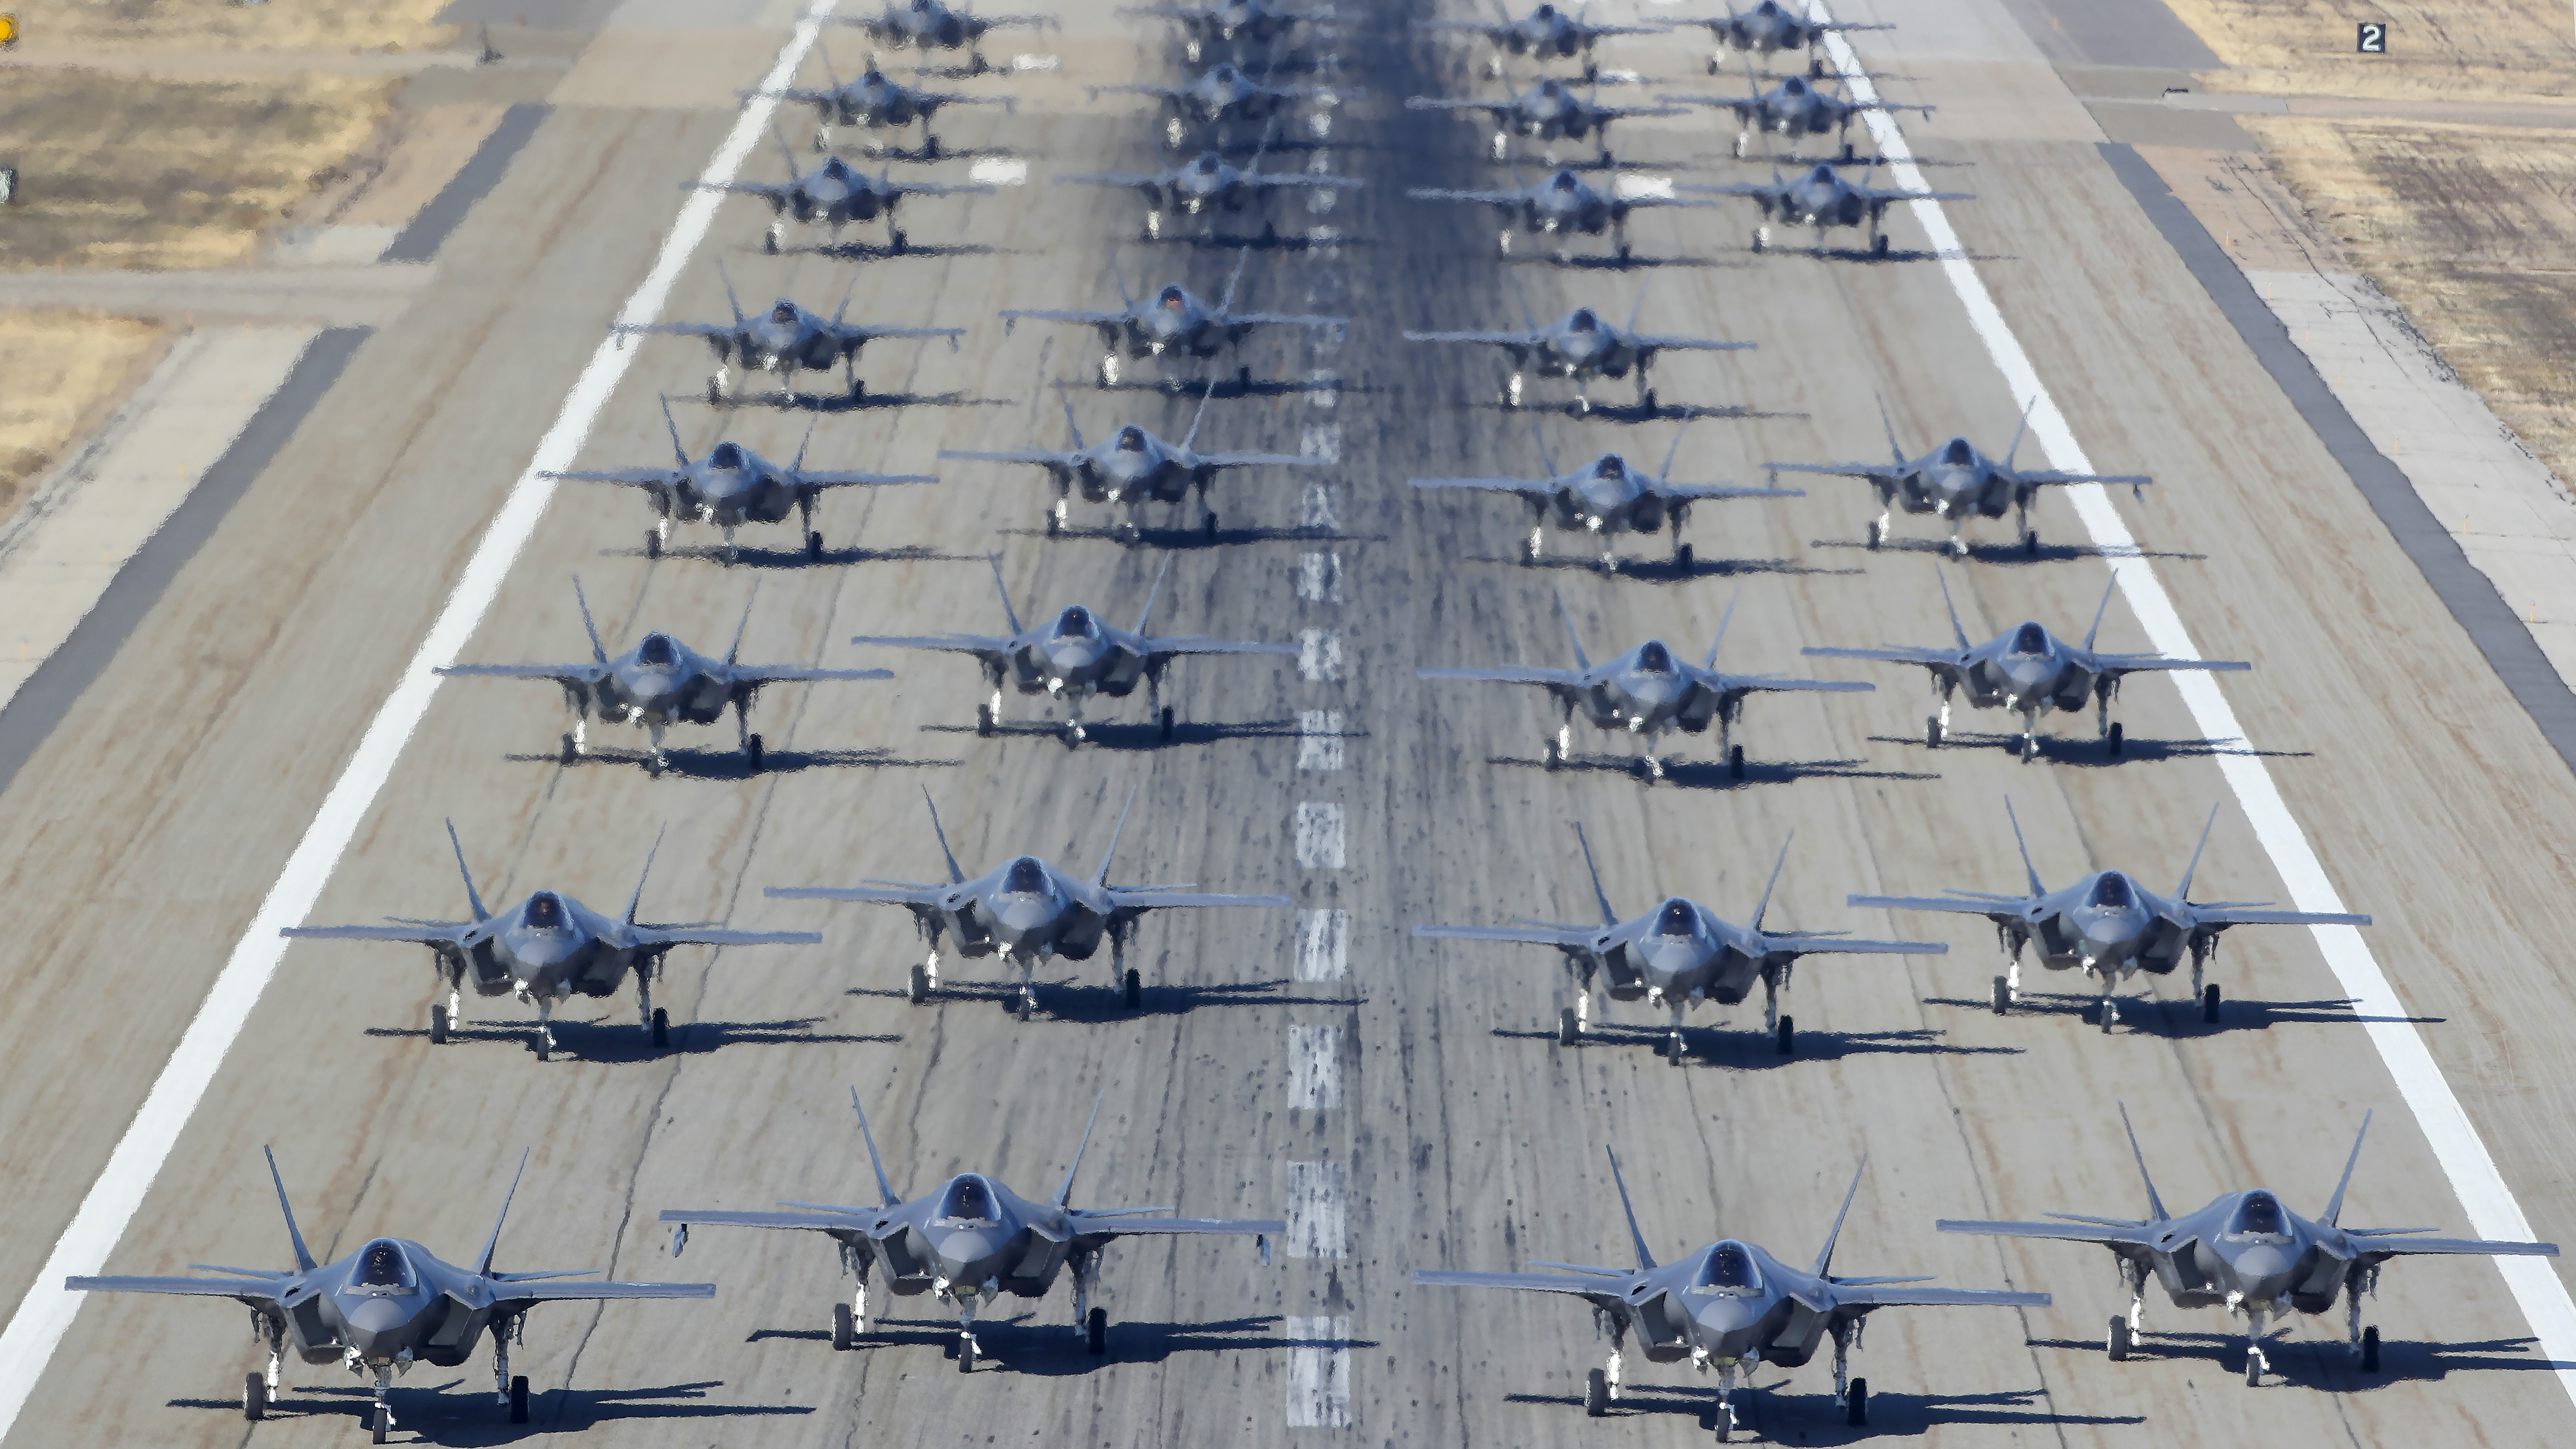 Hill Air Force Bases 388th and 419th fighter wings line up 36, F-35A's on the runway to prepare for take-off on November 19, 2018 in Hill Air Force Base, Utah. This combat training exercise is to help the 388th and 419th, the only combat ready units for the F-35A's, to be ready to launch multiple aircraft on short notice in the defense of the country. (Photo by George Frey/Getty Images)